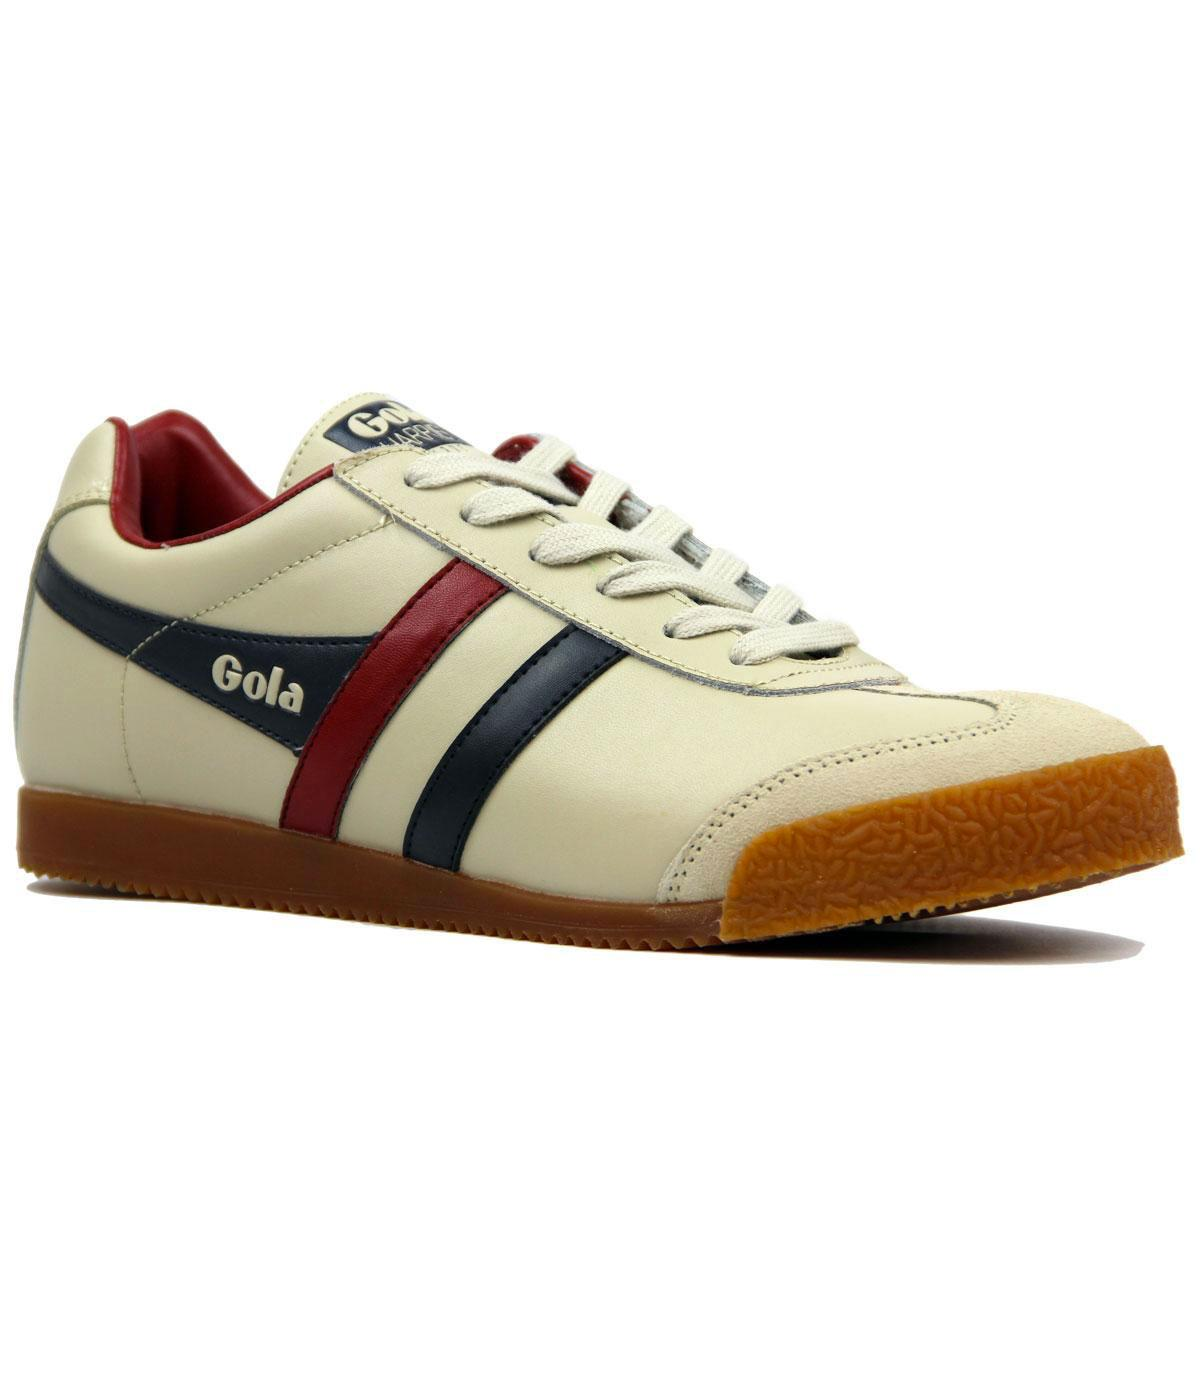 GOLA Harrier Leather Retro 70s Indie Trainers ECRU